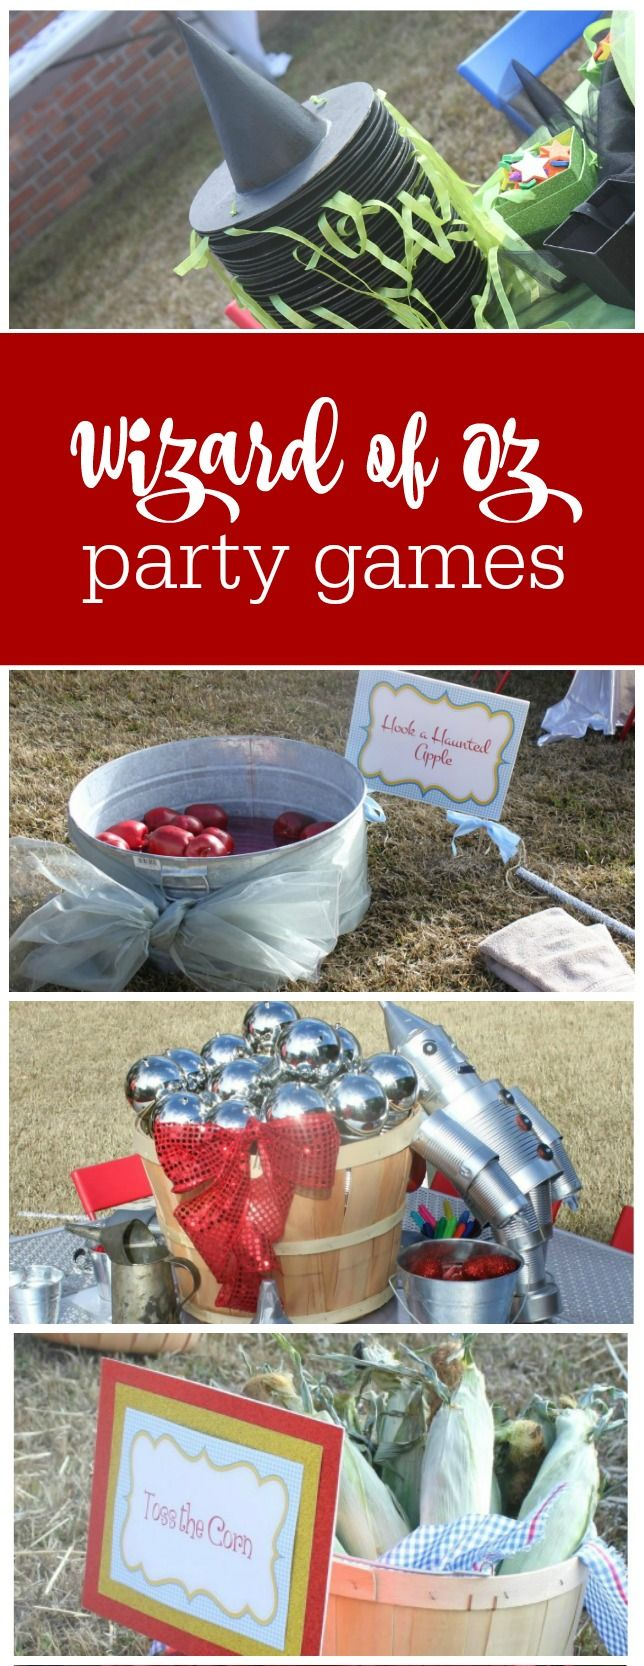 Tons of great Wizard of Oz party games for girls and boys  The Party Teacher | http://thepartyteacher.com/2013/01/10/guest-party-wizard-of-oz-4th-birthday-party/